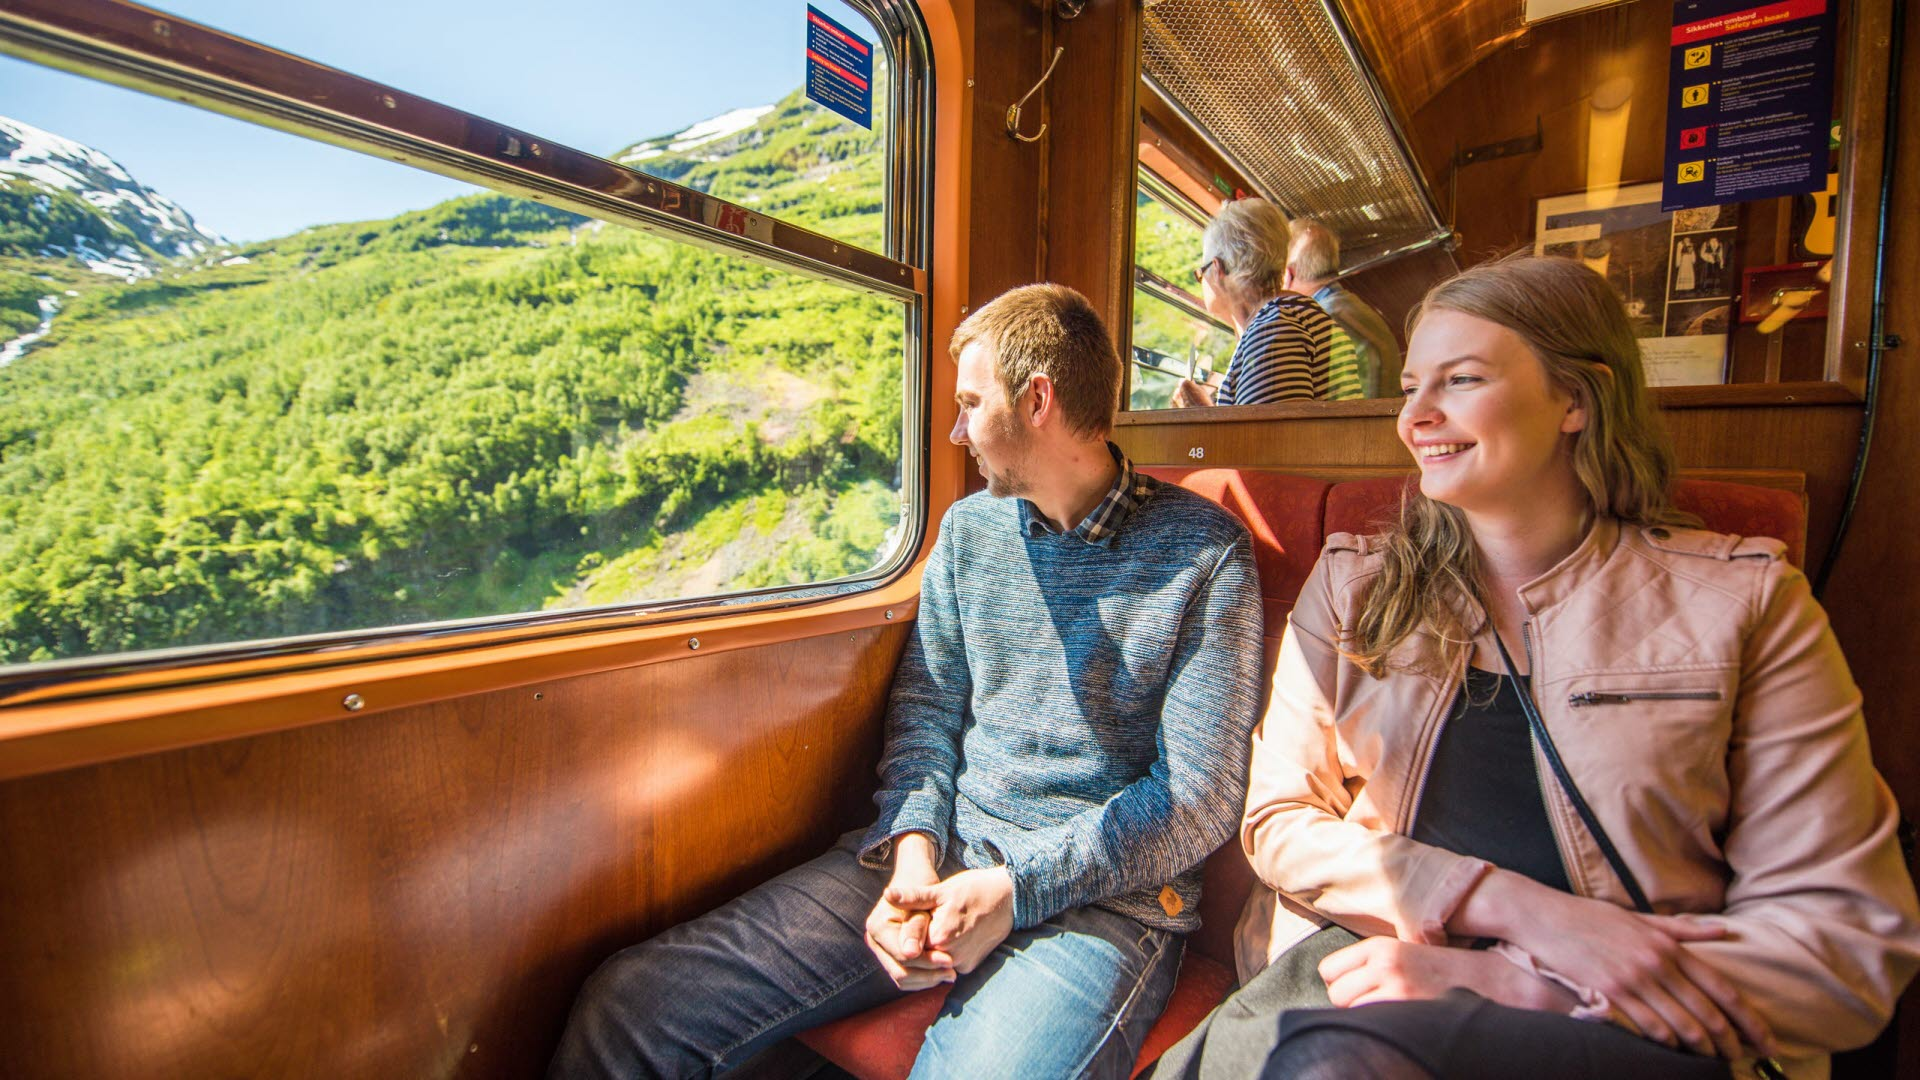 Young man and woman sitting onboard The Flåm Railway in summer looking out. Elderly couple standing looking out the windows.